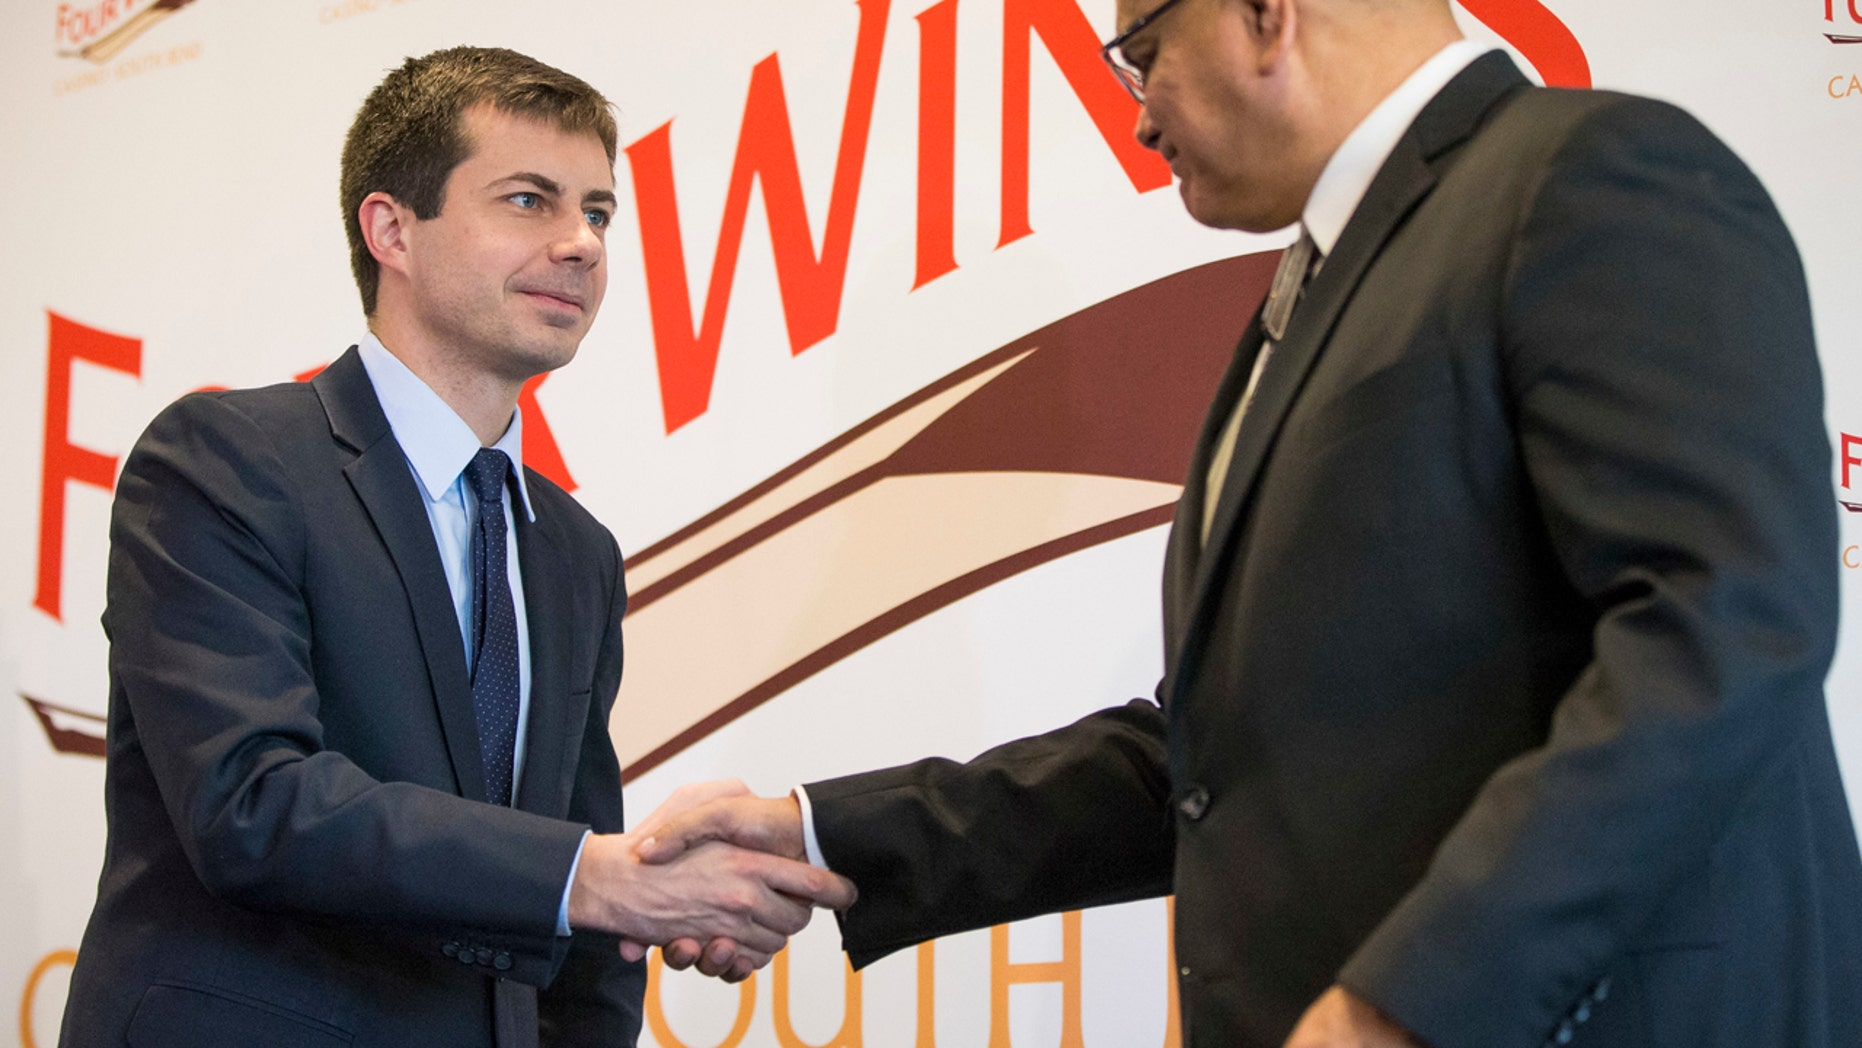 South Bend Mayor Pete Buttigieg, left, shakes hands with John Warren, chairman of the Pokagon Band, during news conference, Wednesday, Dec. 7, 2016, in South Bend, Ind.